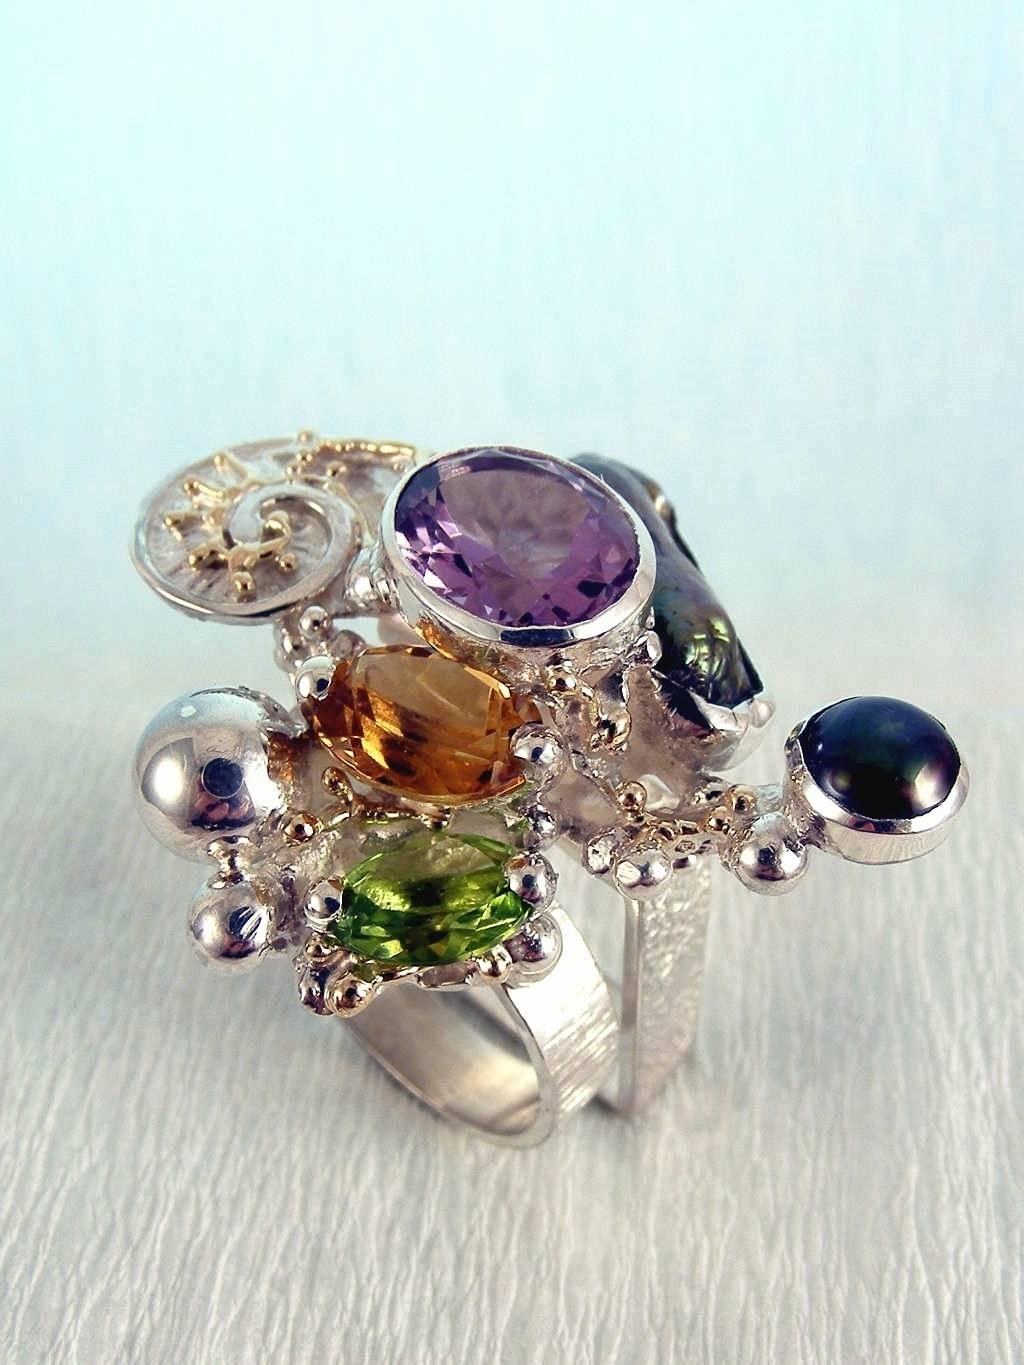 Original Handmade by Artist Designer Maker, Gregory Pyra Piro One of a Kind Original #Handmade #Sterling #Silver and #Gold, Jewellery in #London, #Art Jewellery, #Jewellery Handcrafted by #Artist, #Ring 1565